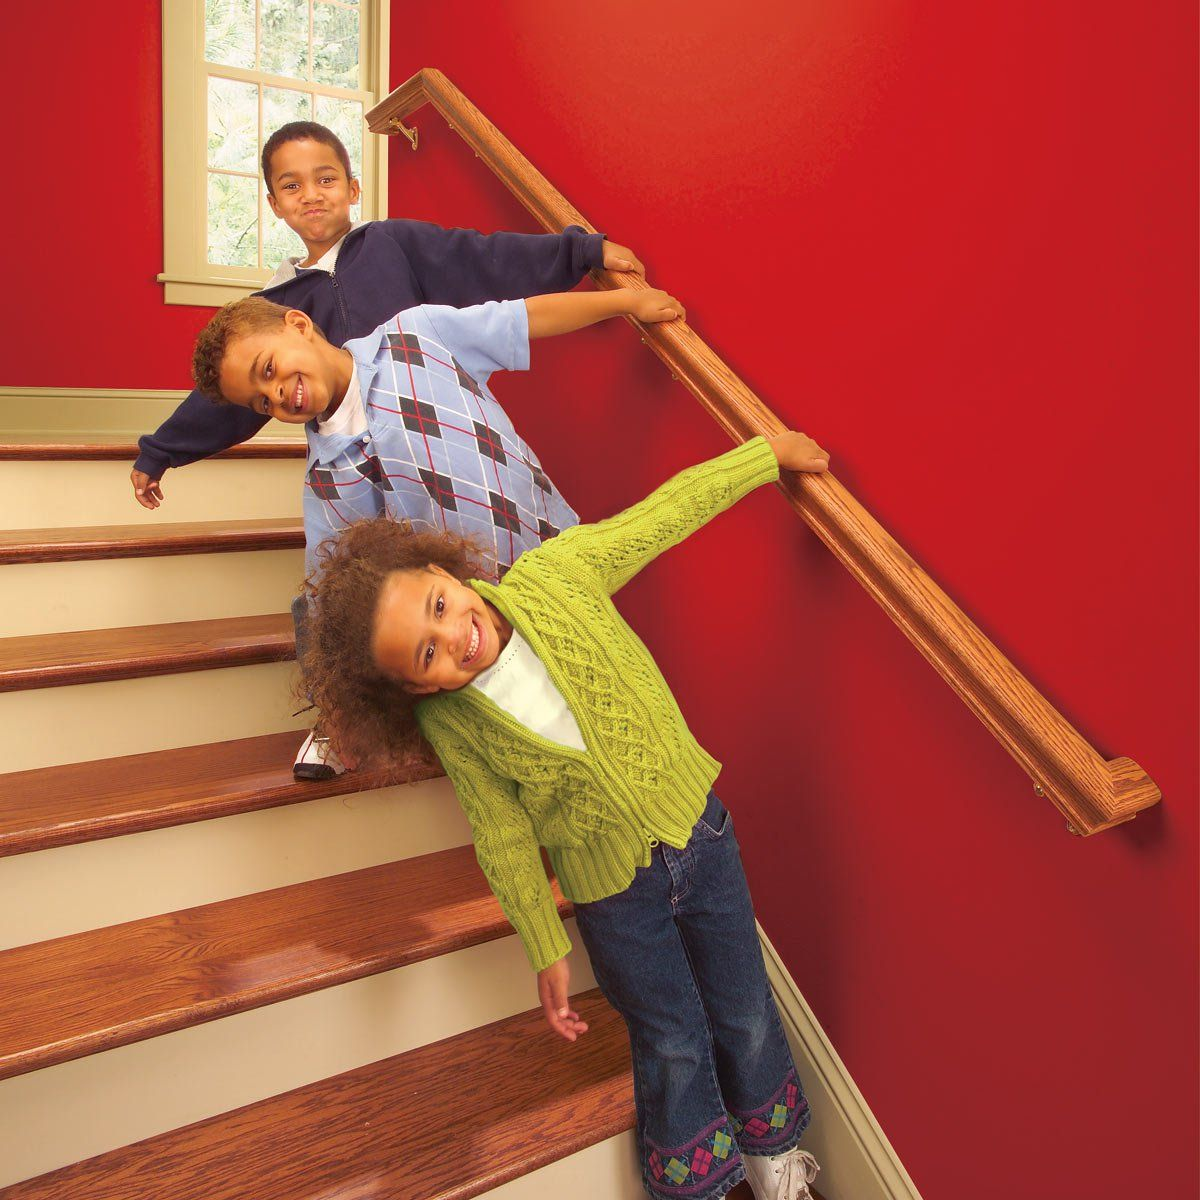 Best Install A New Stair Handrail Diy House Projects Stair 400 x 300